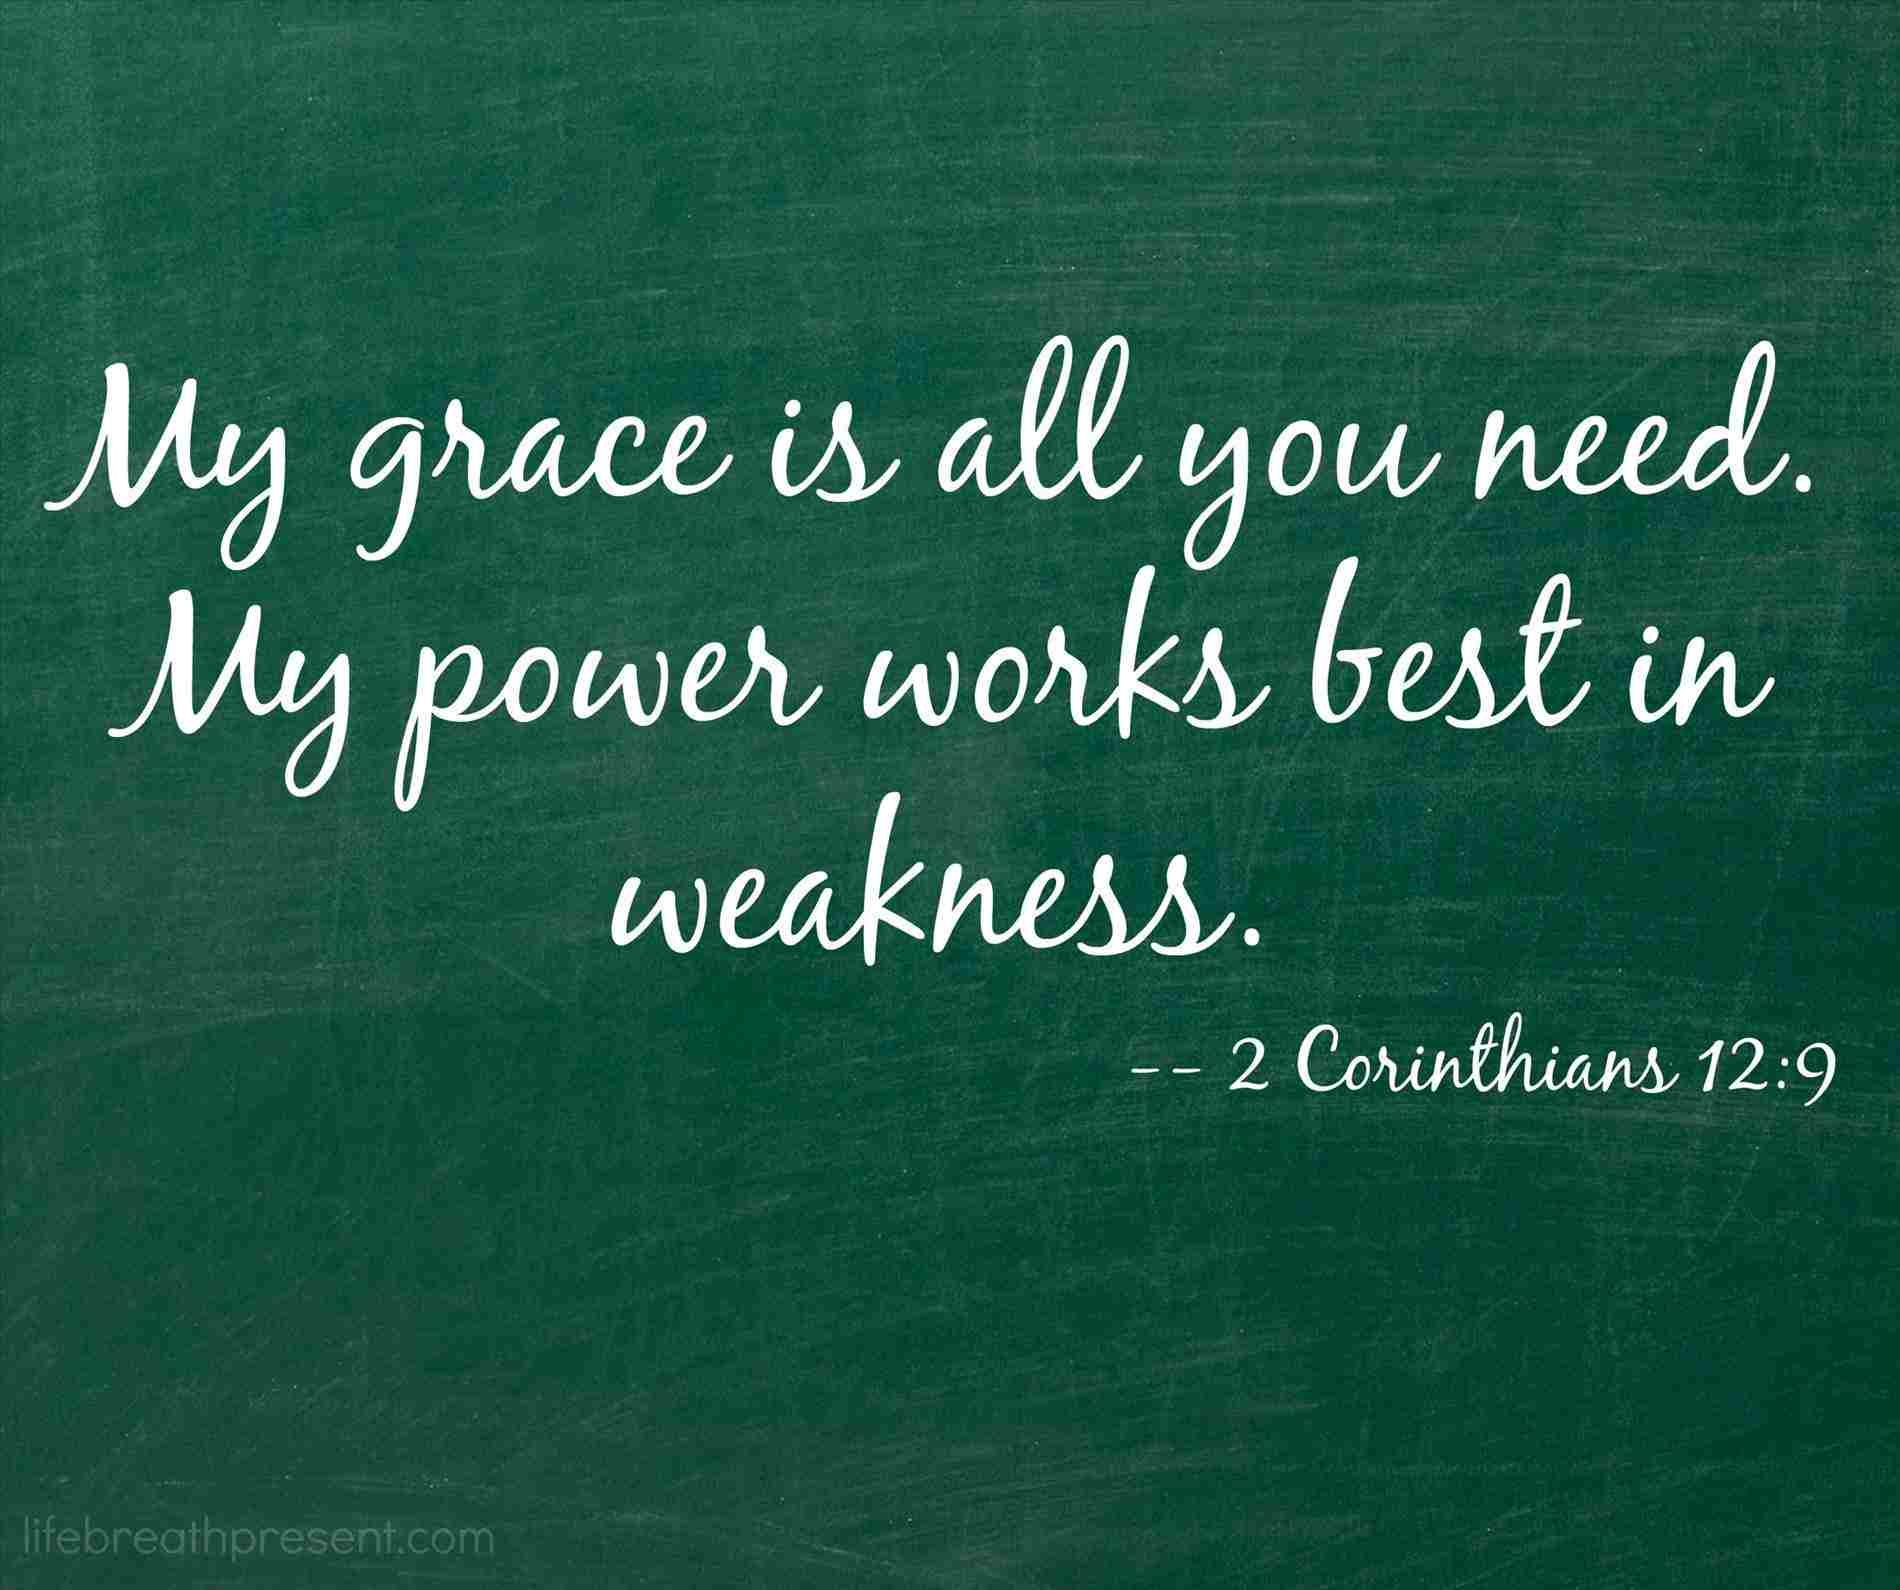 Blessing Quotes Bible: Quotes From Bible Peace : Peace And Love Quotes From The